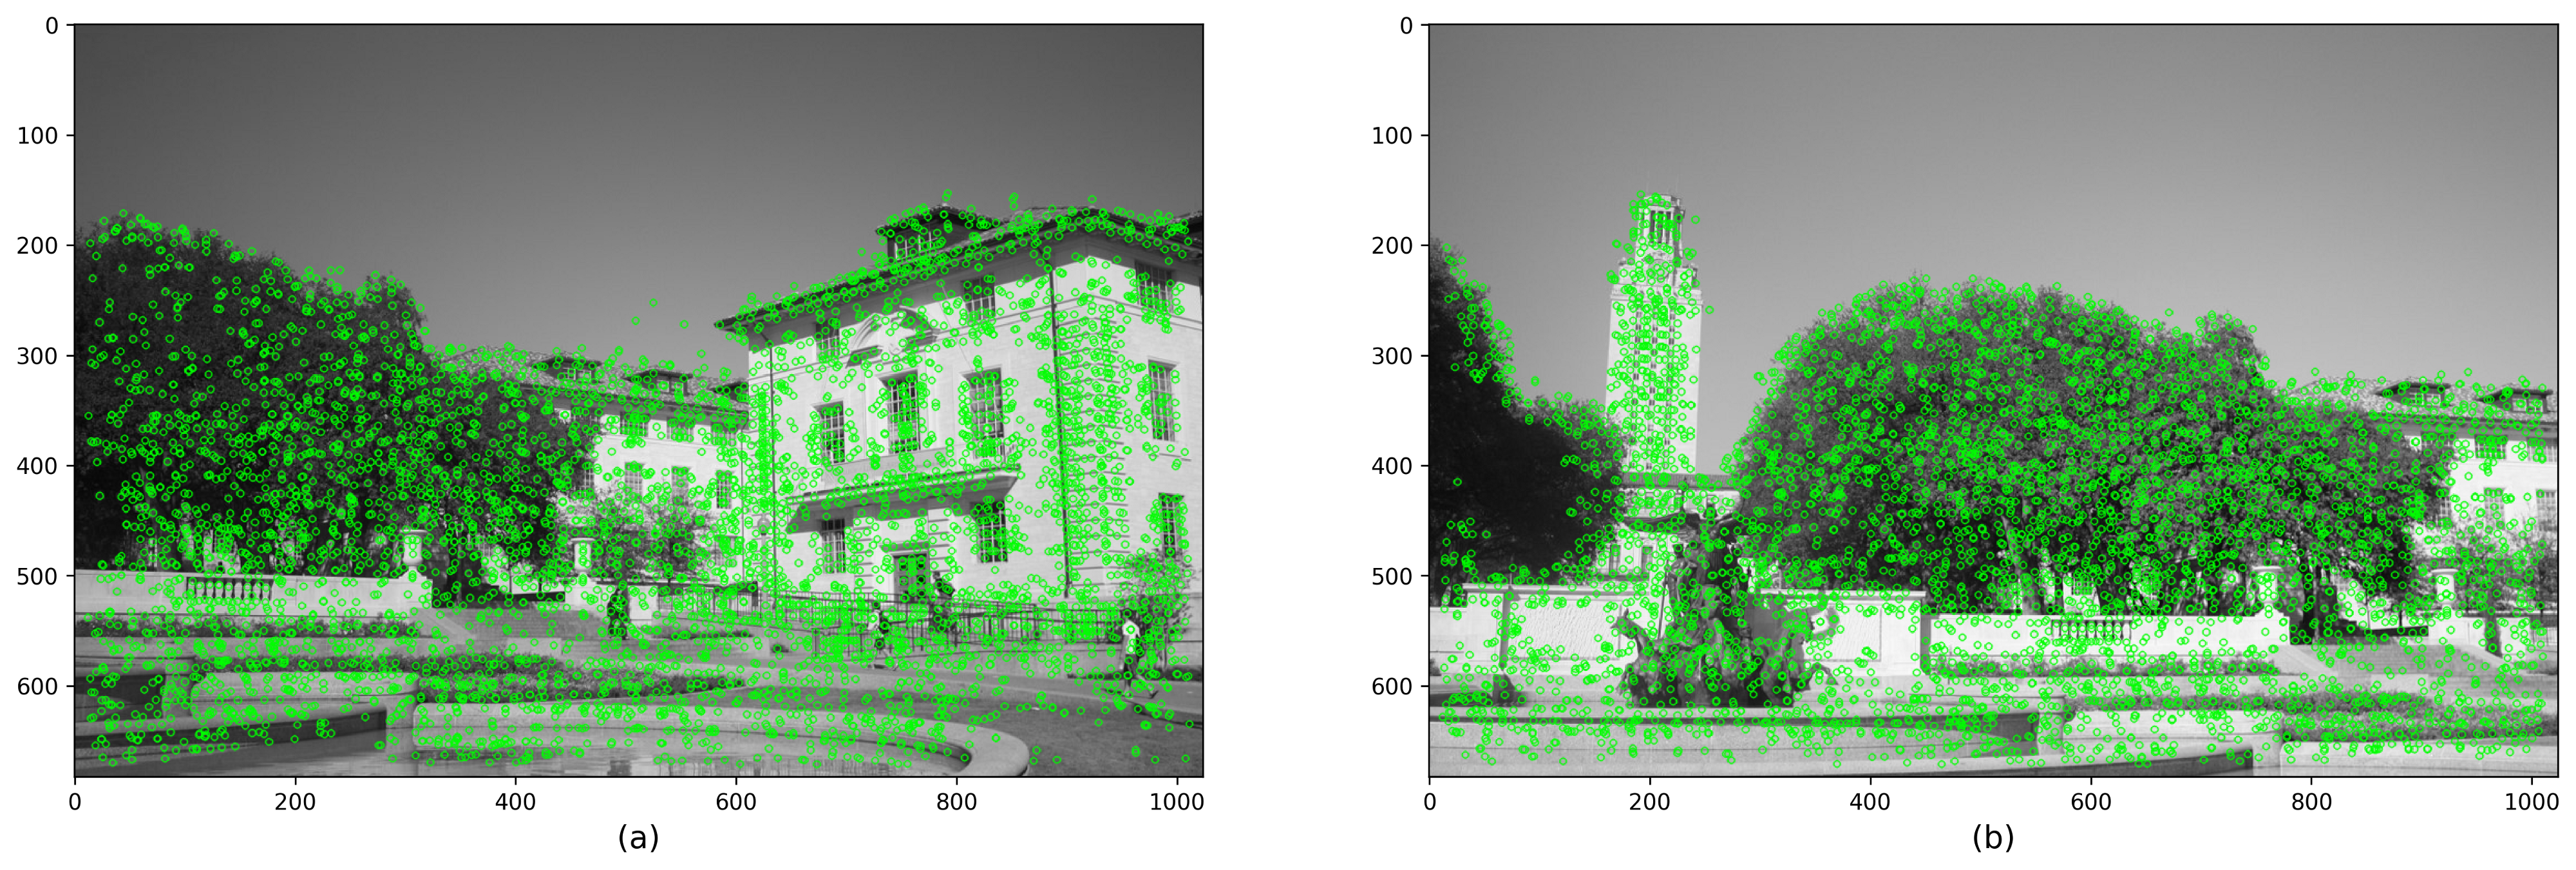 Image Panorama Stitching with OpenCV - Towards Data Science